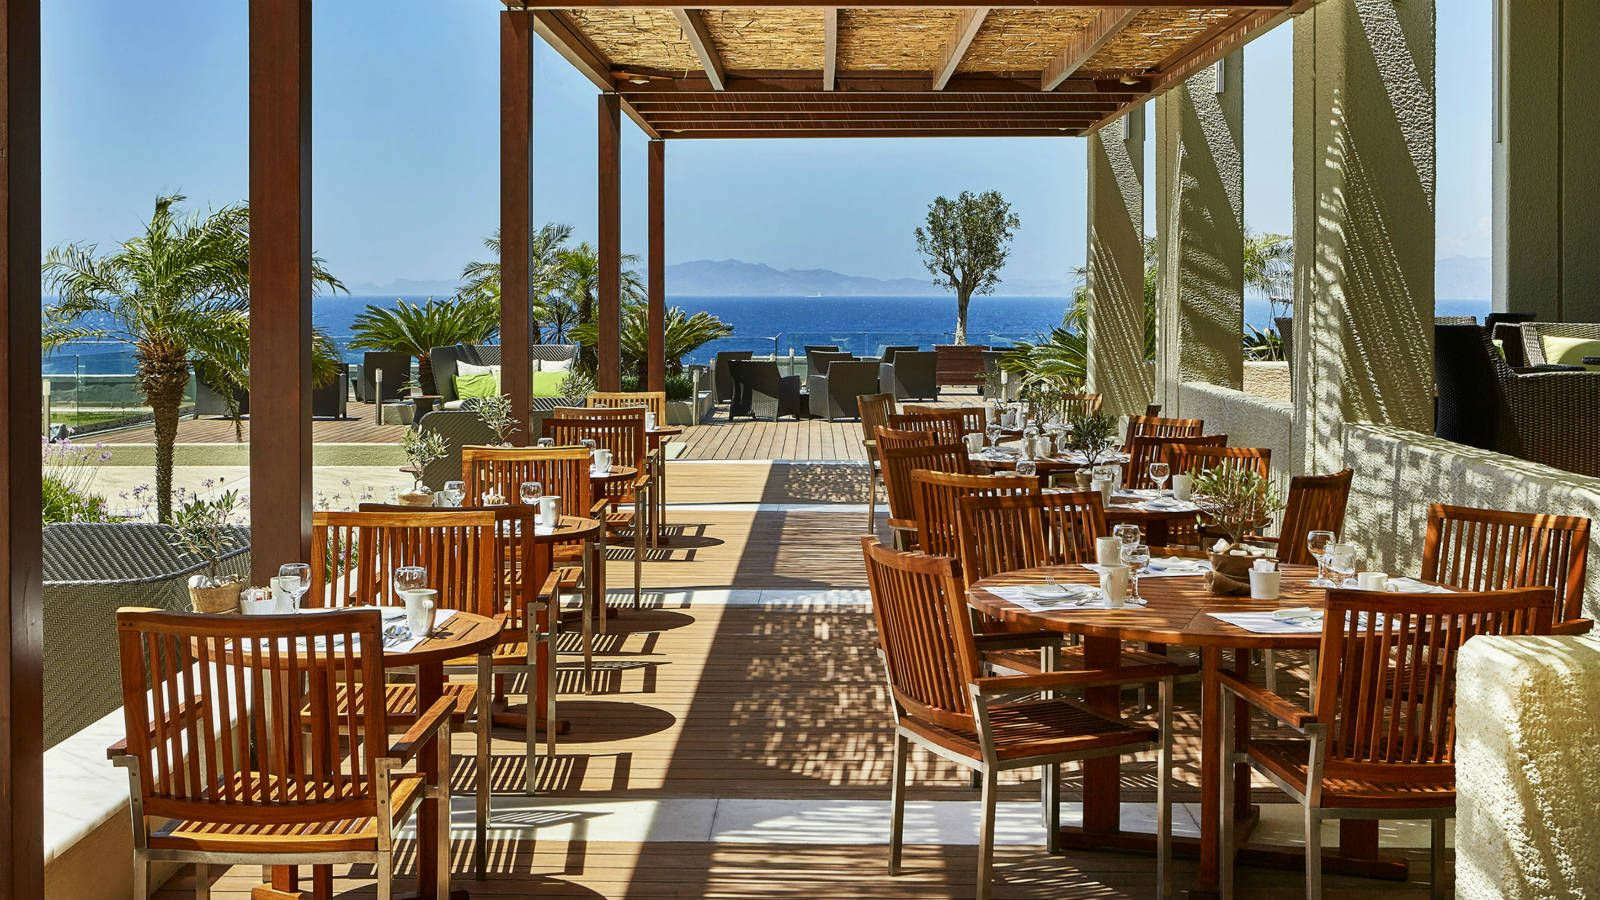 Dedicated SPG Breakfast Area at the Castellania Restaurant of Sheraton Rhodes Resort